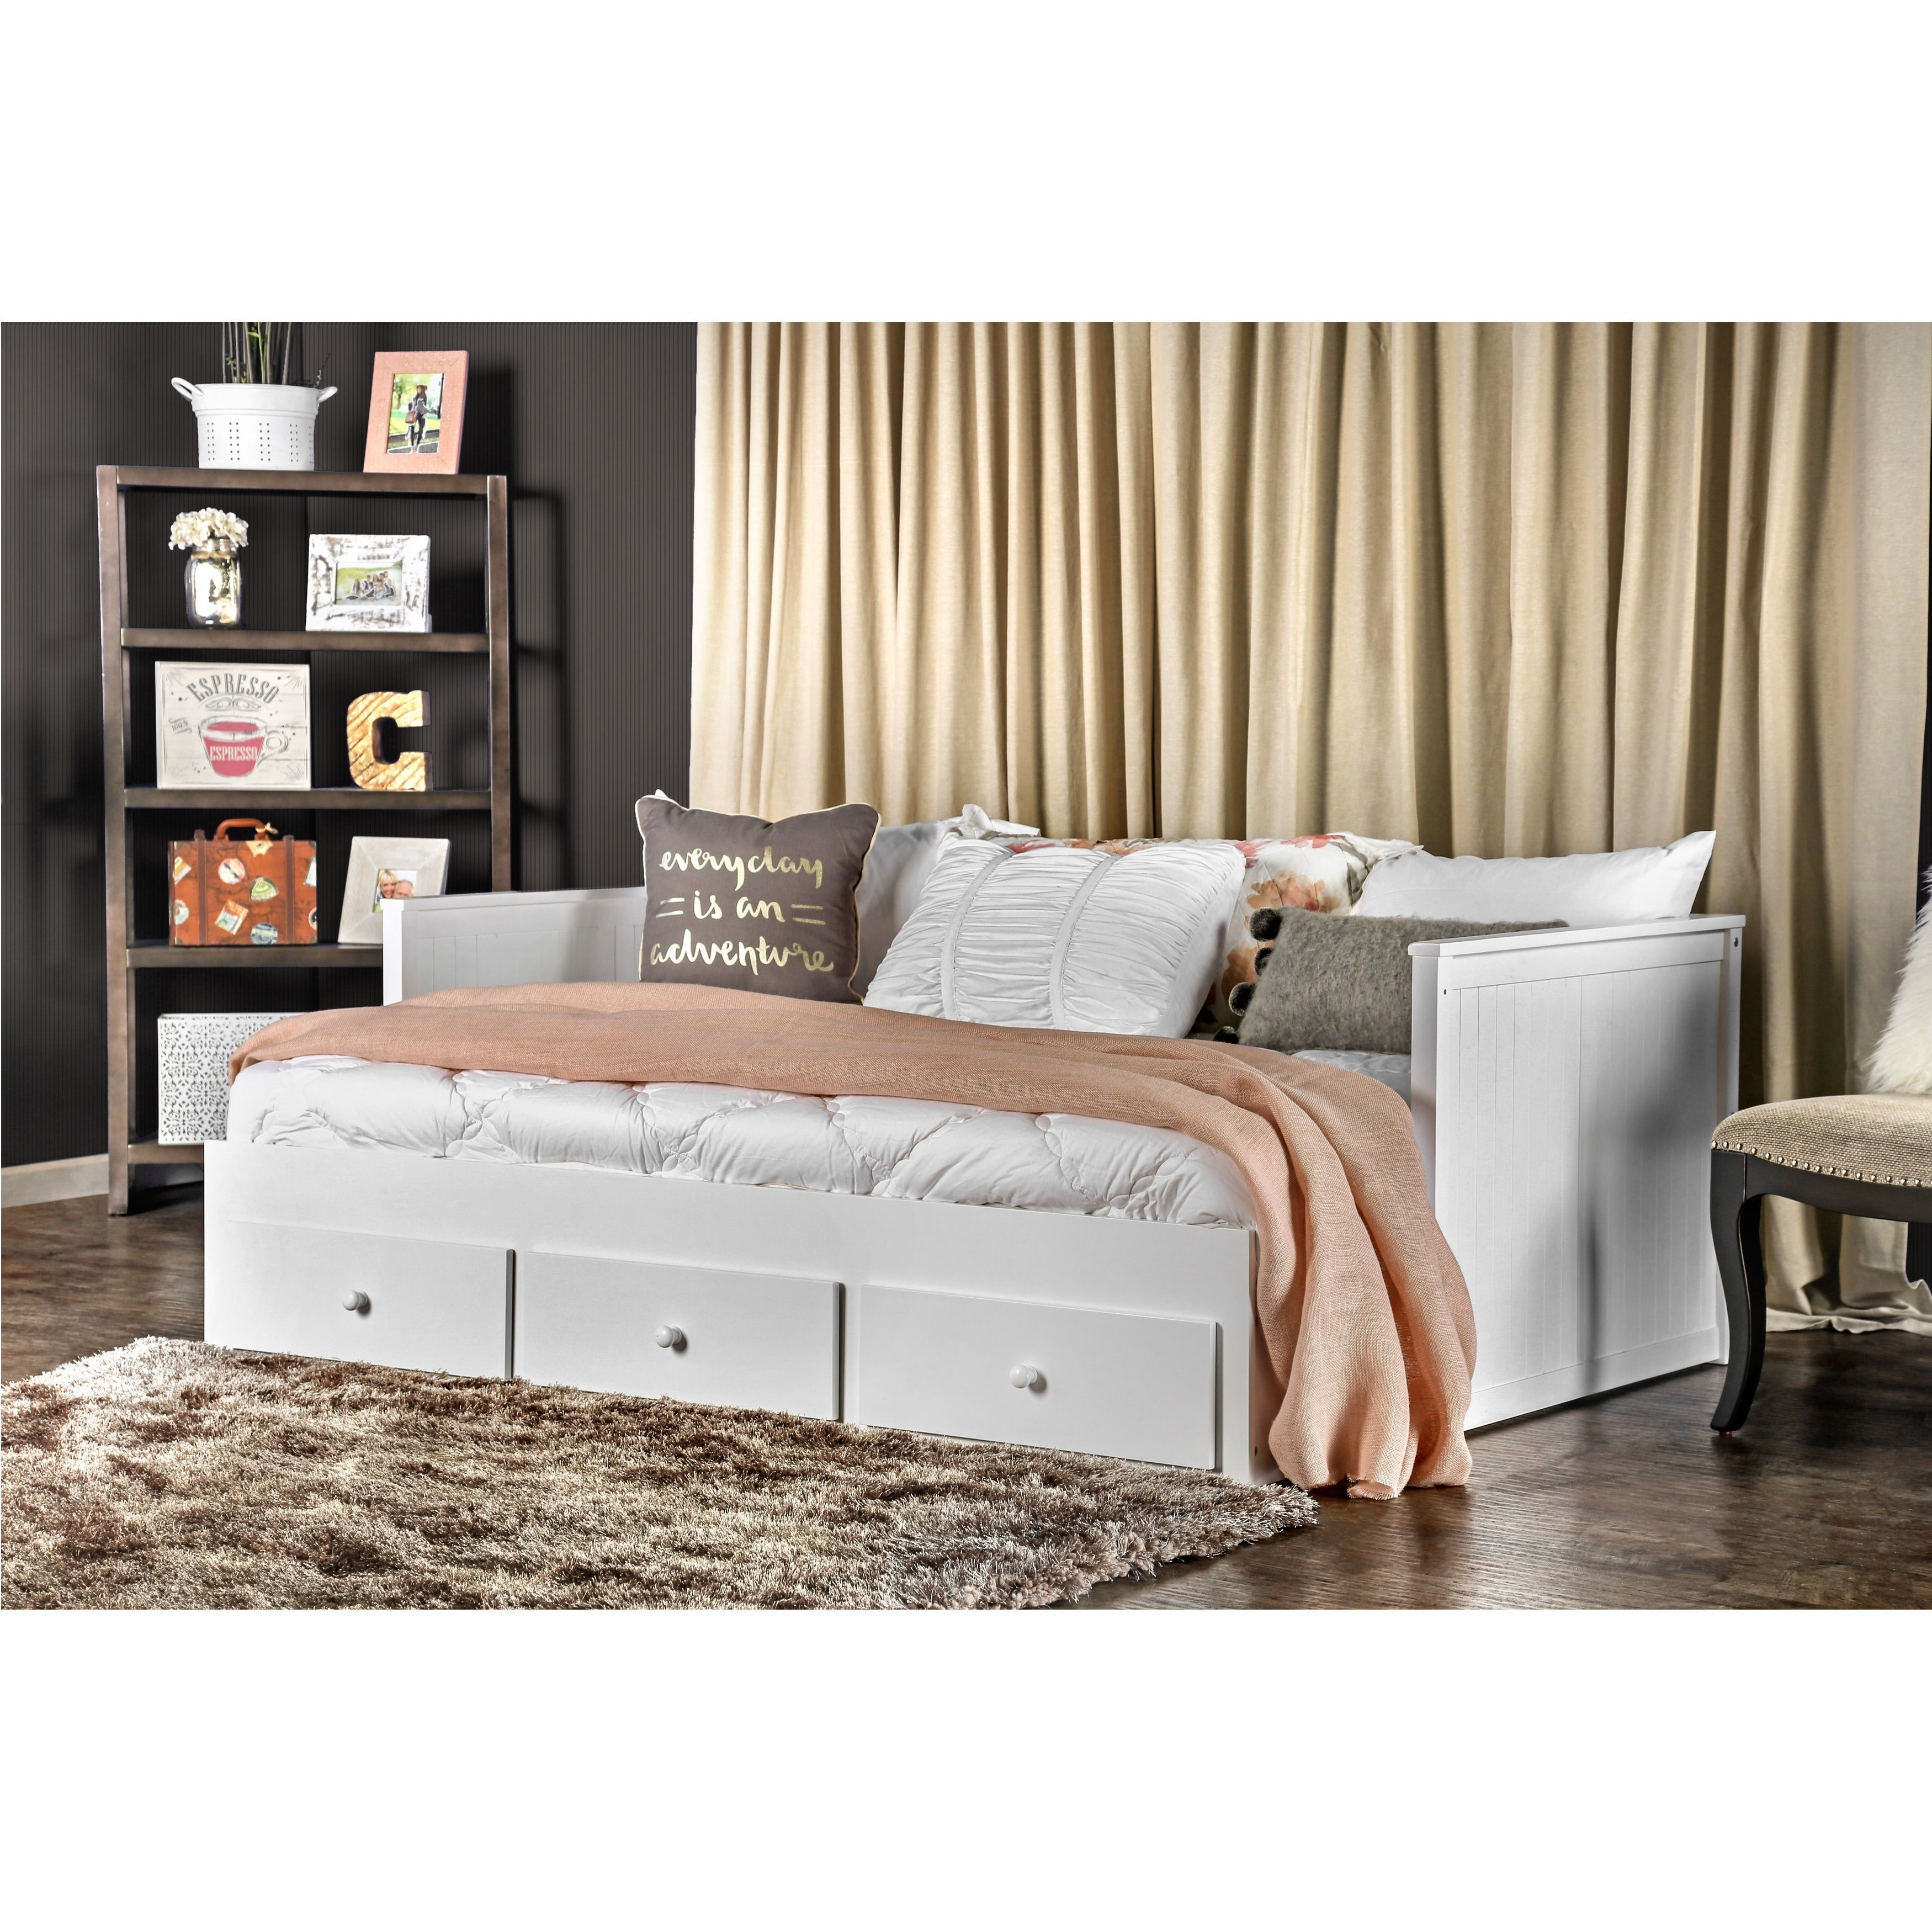 Ophelia Contemporary Full Black Storage Daybed By Foa On Free Shipping Today 20831128